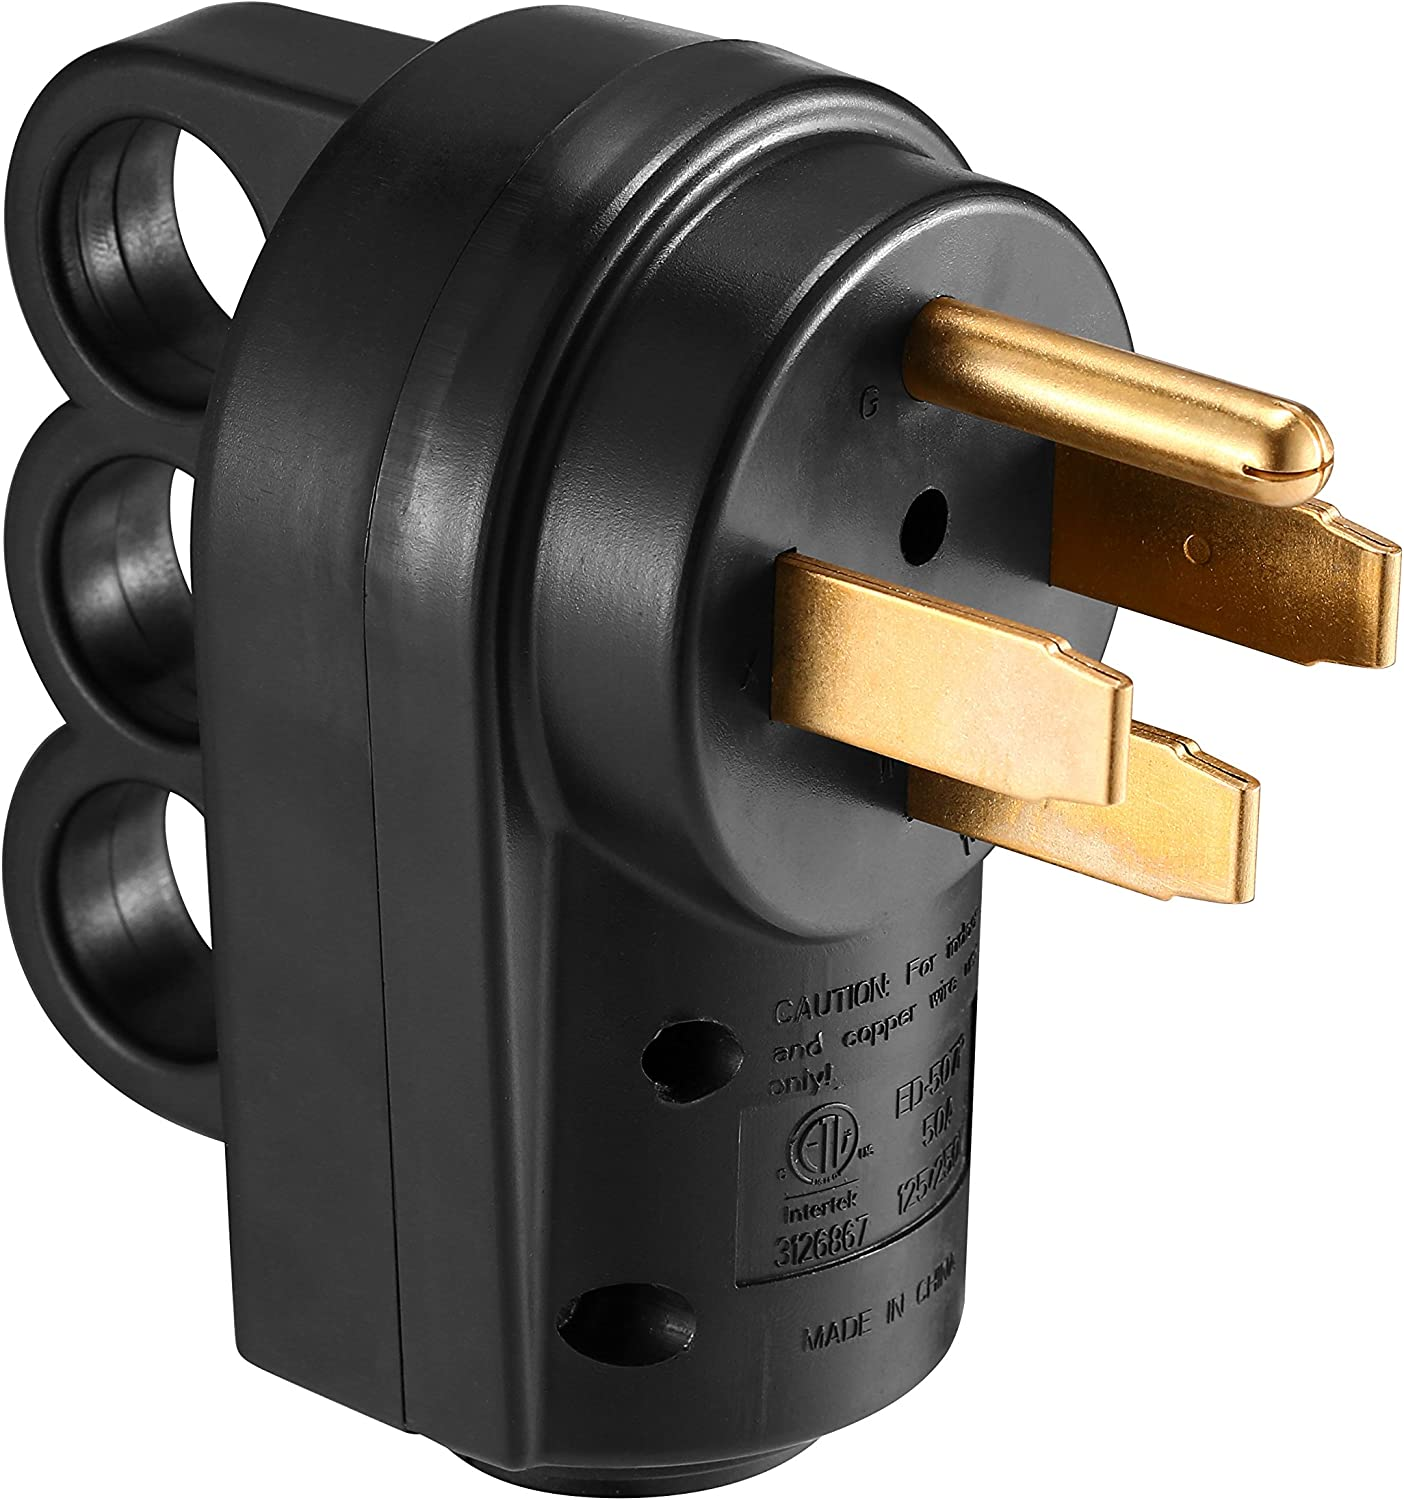 Miady 50AMP RV Replacement Male Plug with Easy Unplug Design, ETL Certified